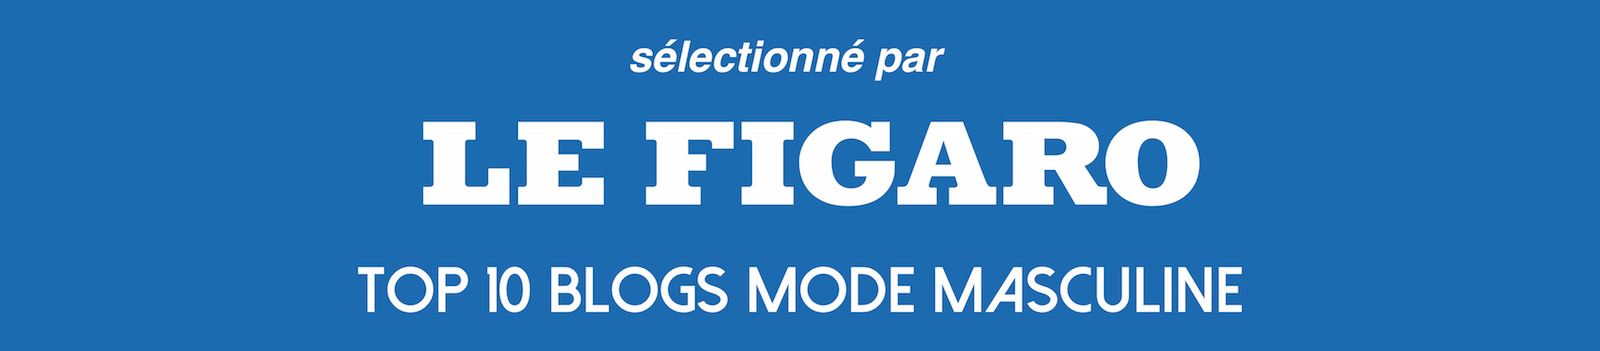 blog mode homme selection le figaro